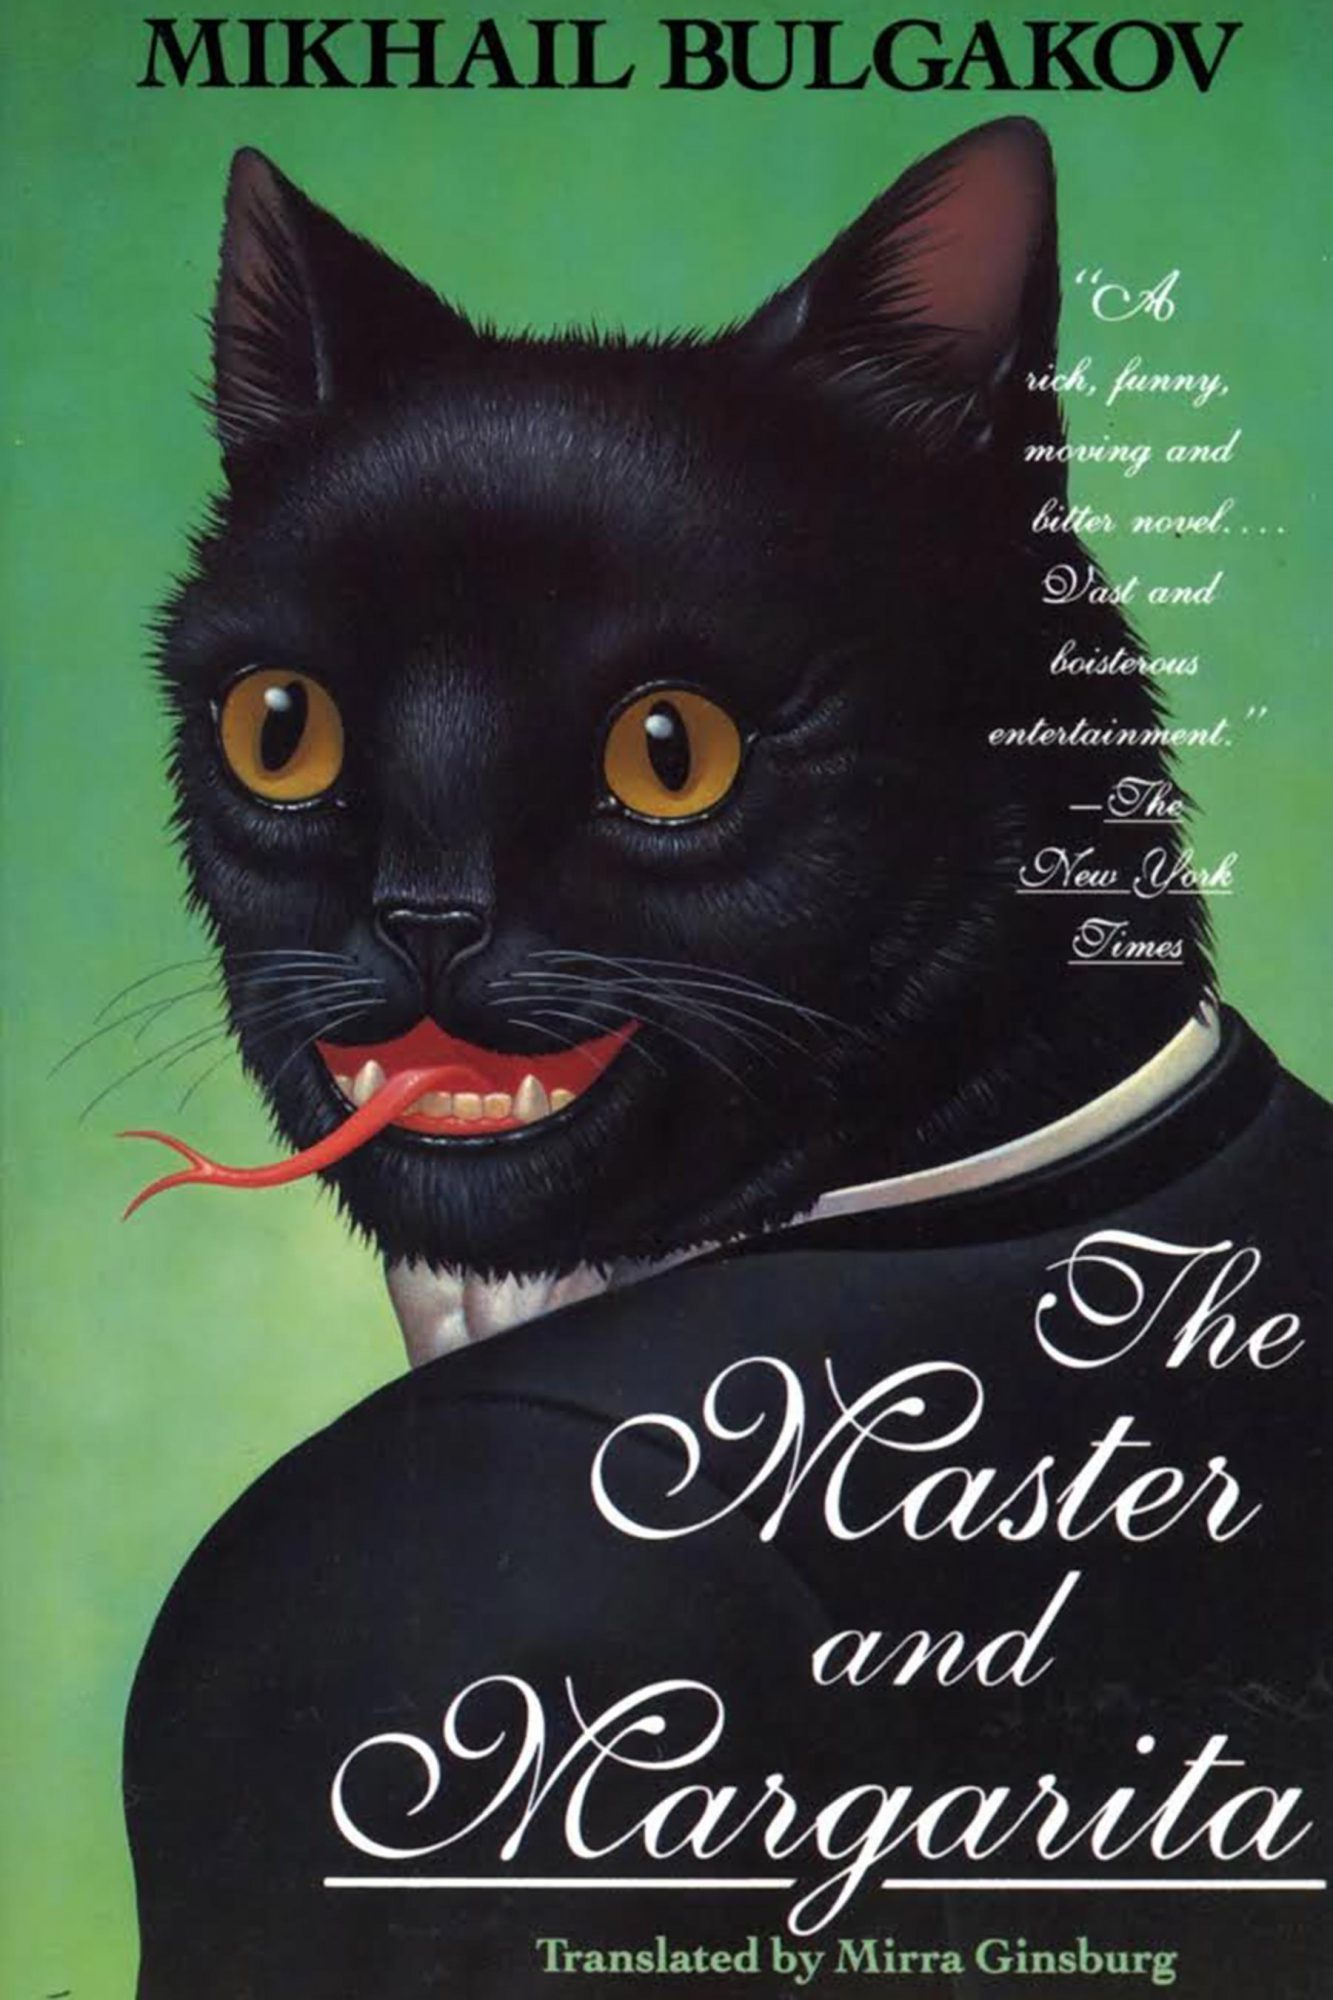 The Master and Margarita by Mikhail Bulgakov CR: The Overlook Press